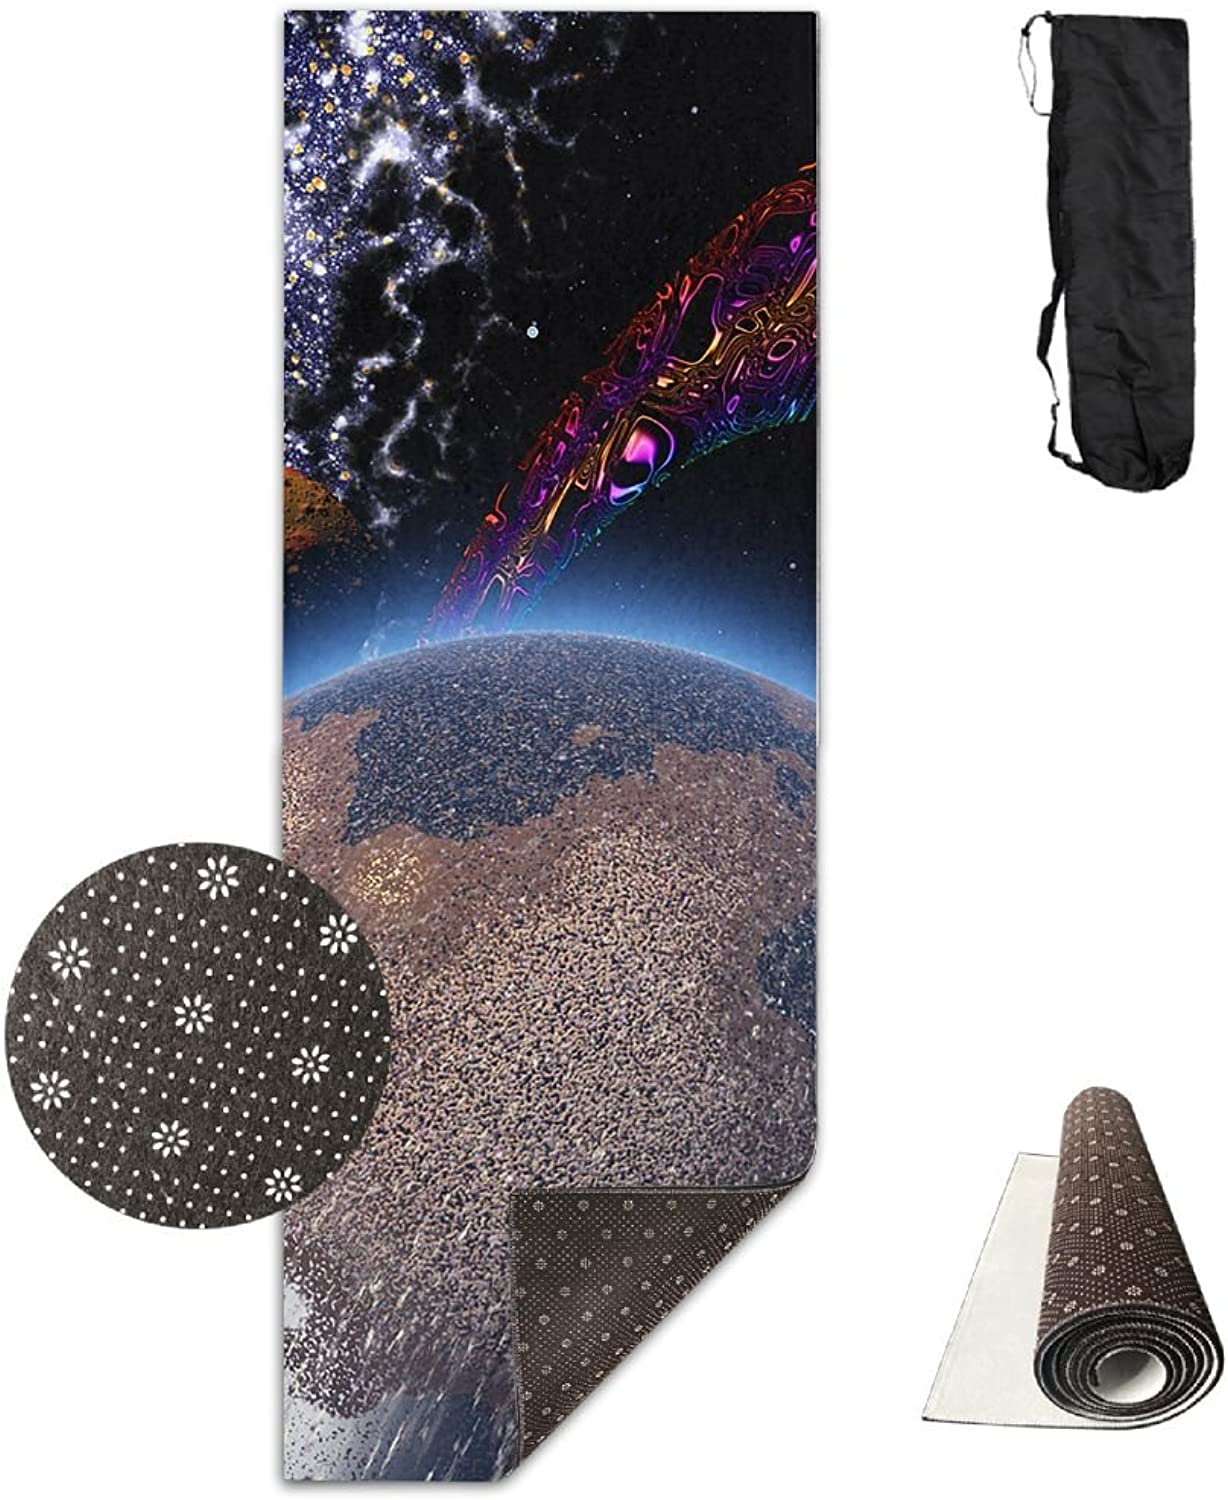 Yoga Mat Non Slip 24  X 71  Exercise Mats Space Planet Premium Fitness Pilates Carrying Strap